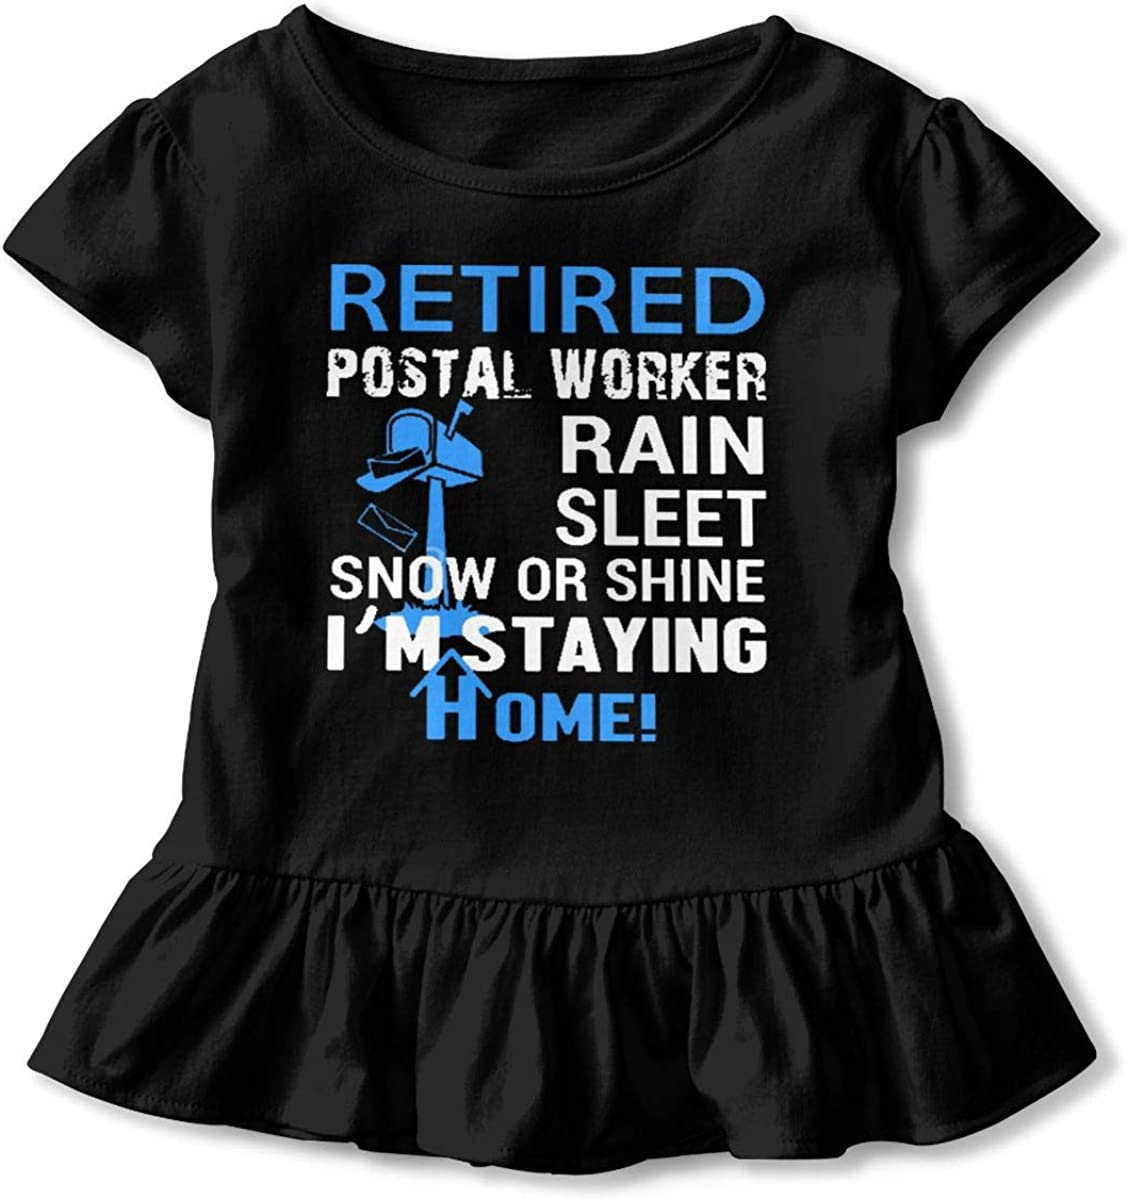 Retired Postal Worker Rain Shine Snow Staying Home Shirt Baby Girls Ruffles Print Clothes for 2-6 Years Old Baby